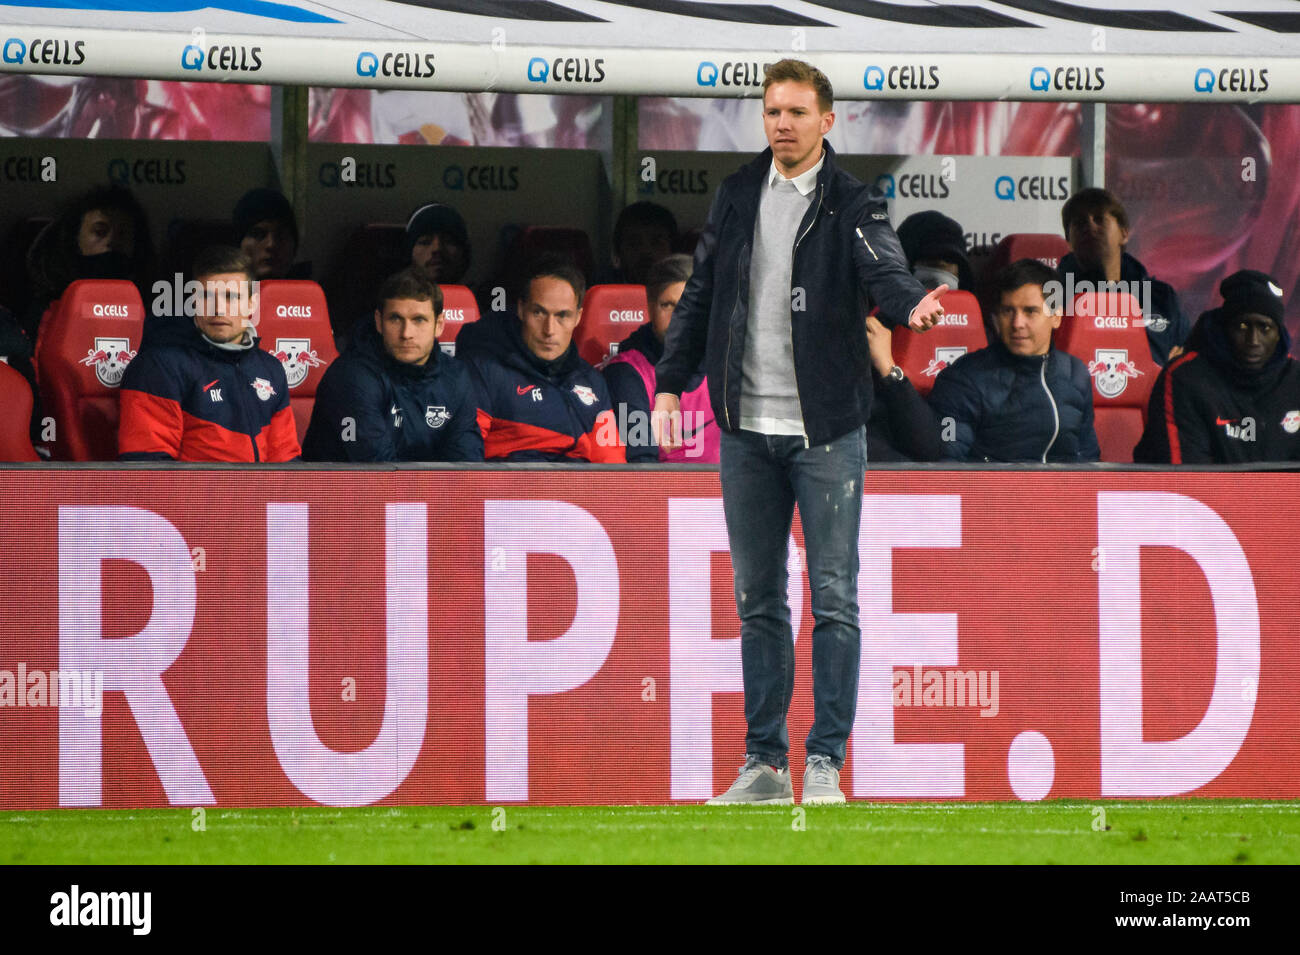 Leipzig Germany 23rd Nov 2019 Head Coach Of Leipzig Julian Nagelsmann Front Reacts During A German Bundesliga Match Between Rb Leipzig And 1 Fc Koeln In Leipzig Germany On Nov 23 2019 Credit